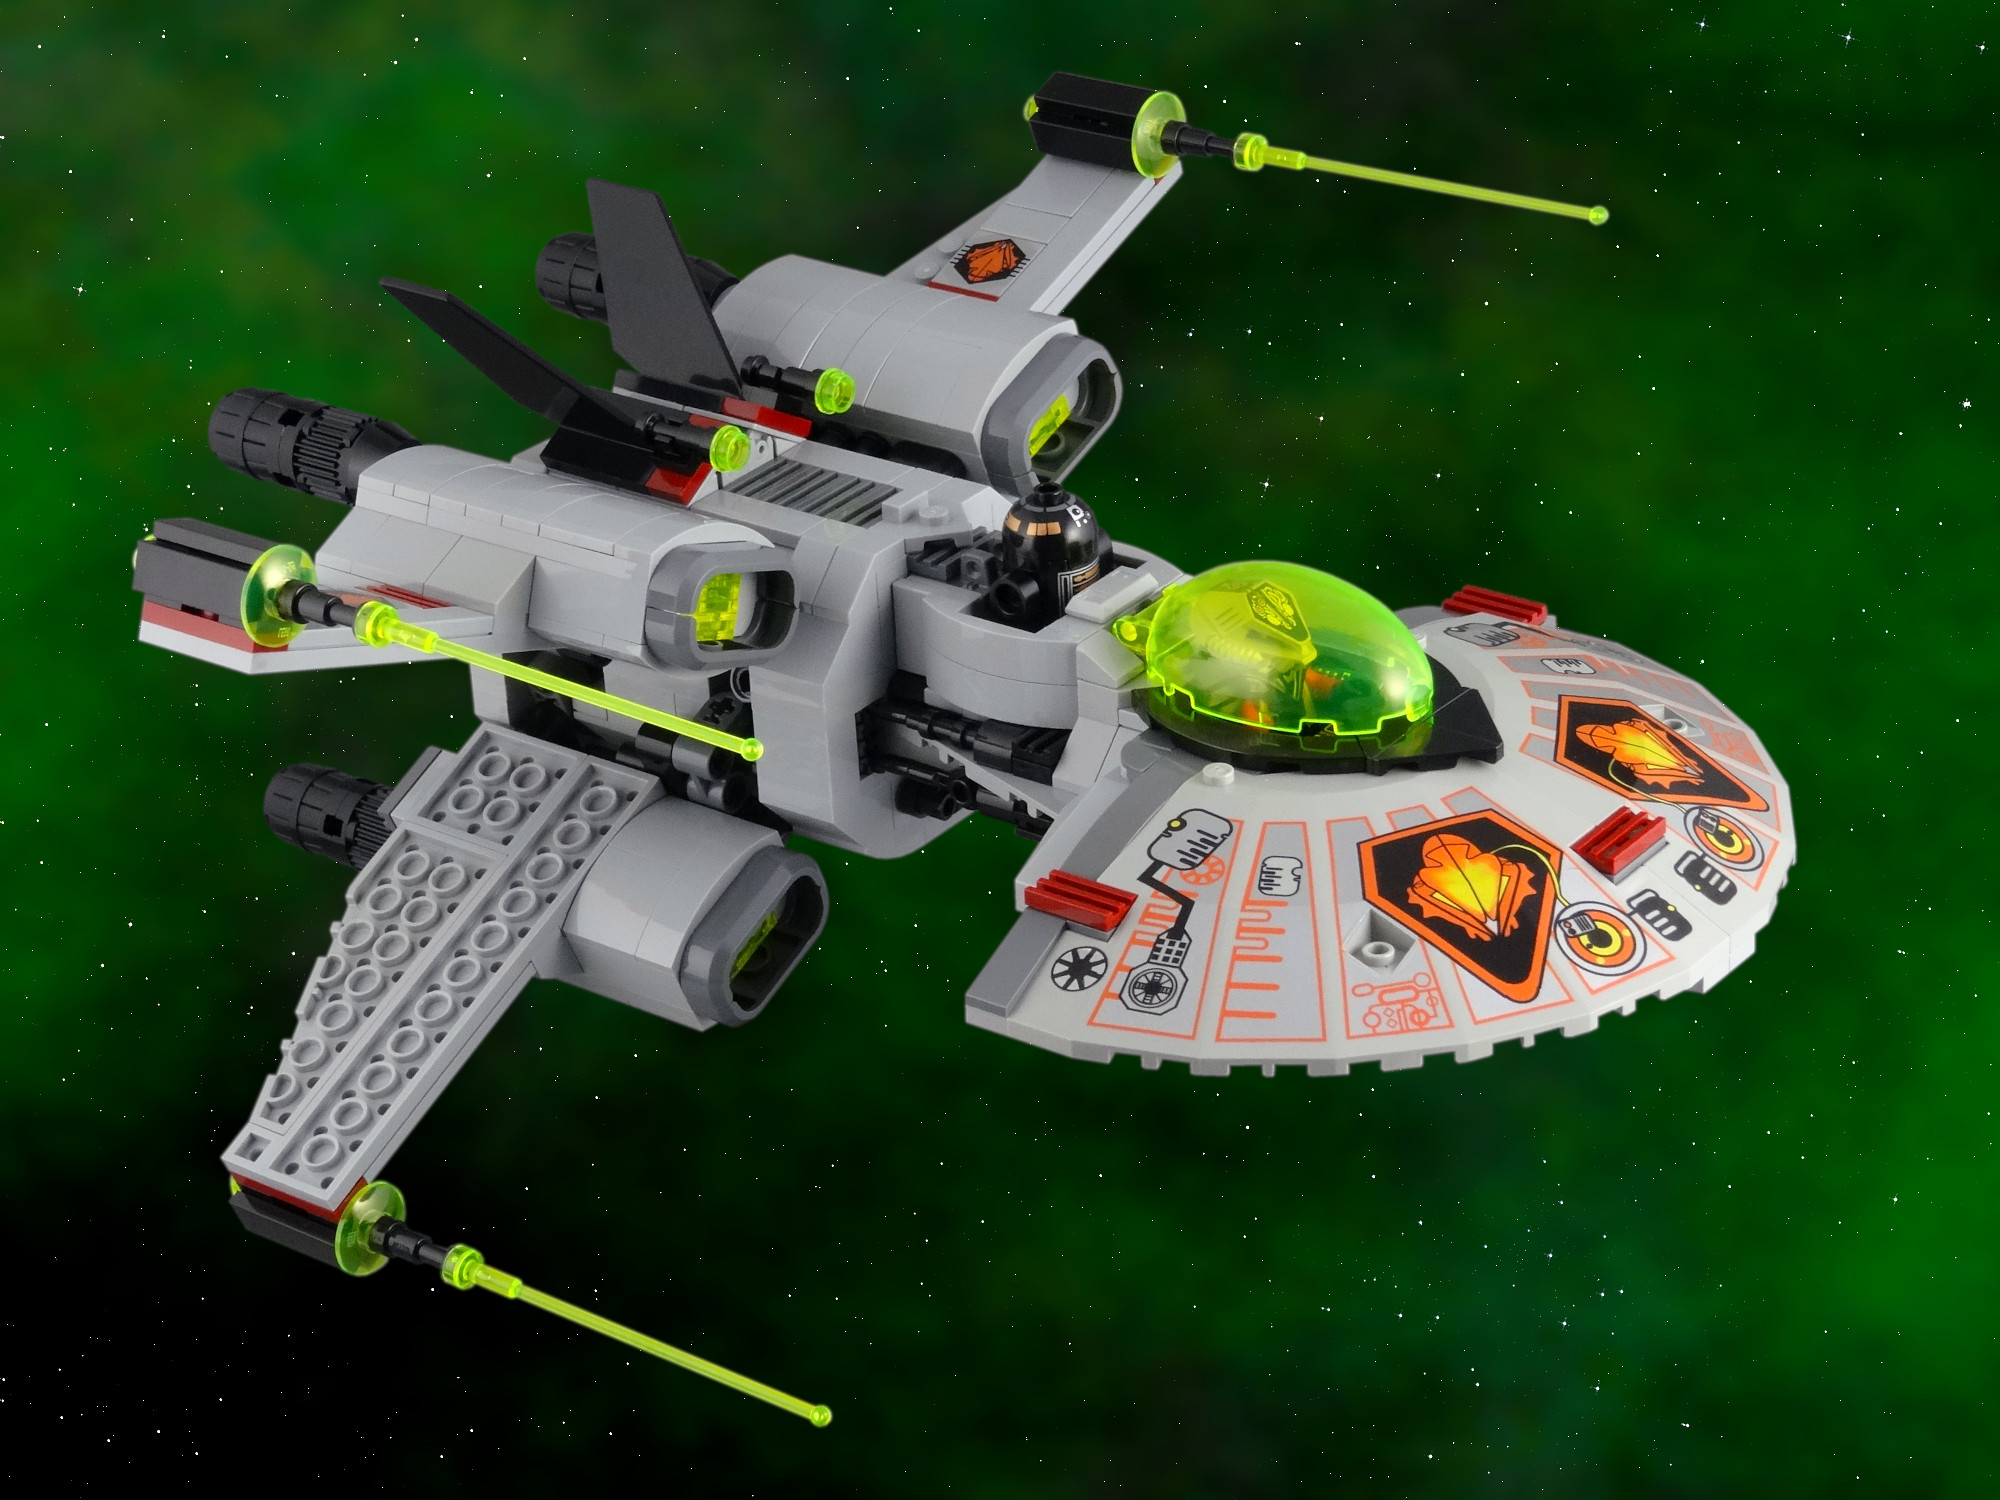 Warp Wing Fighter